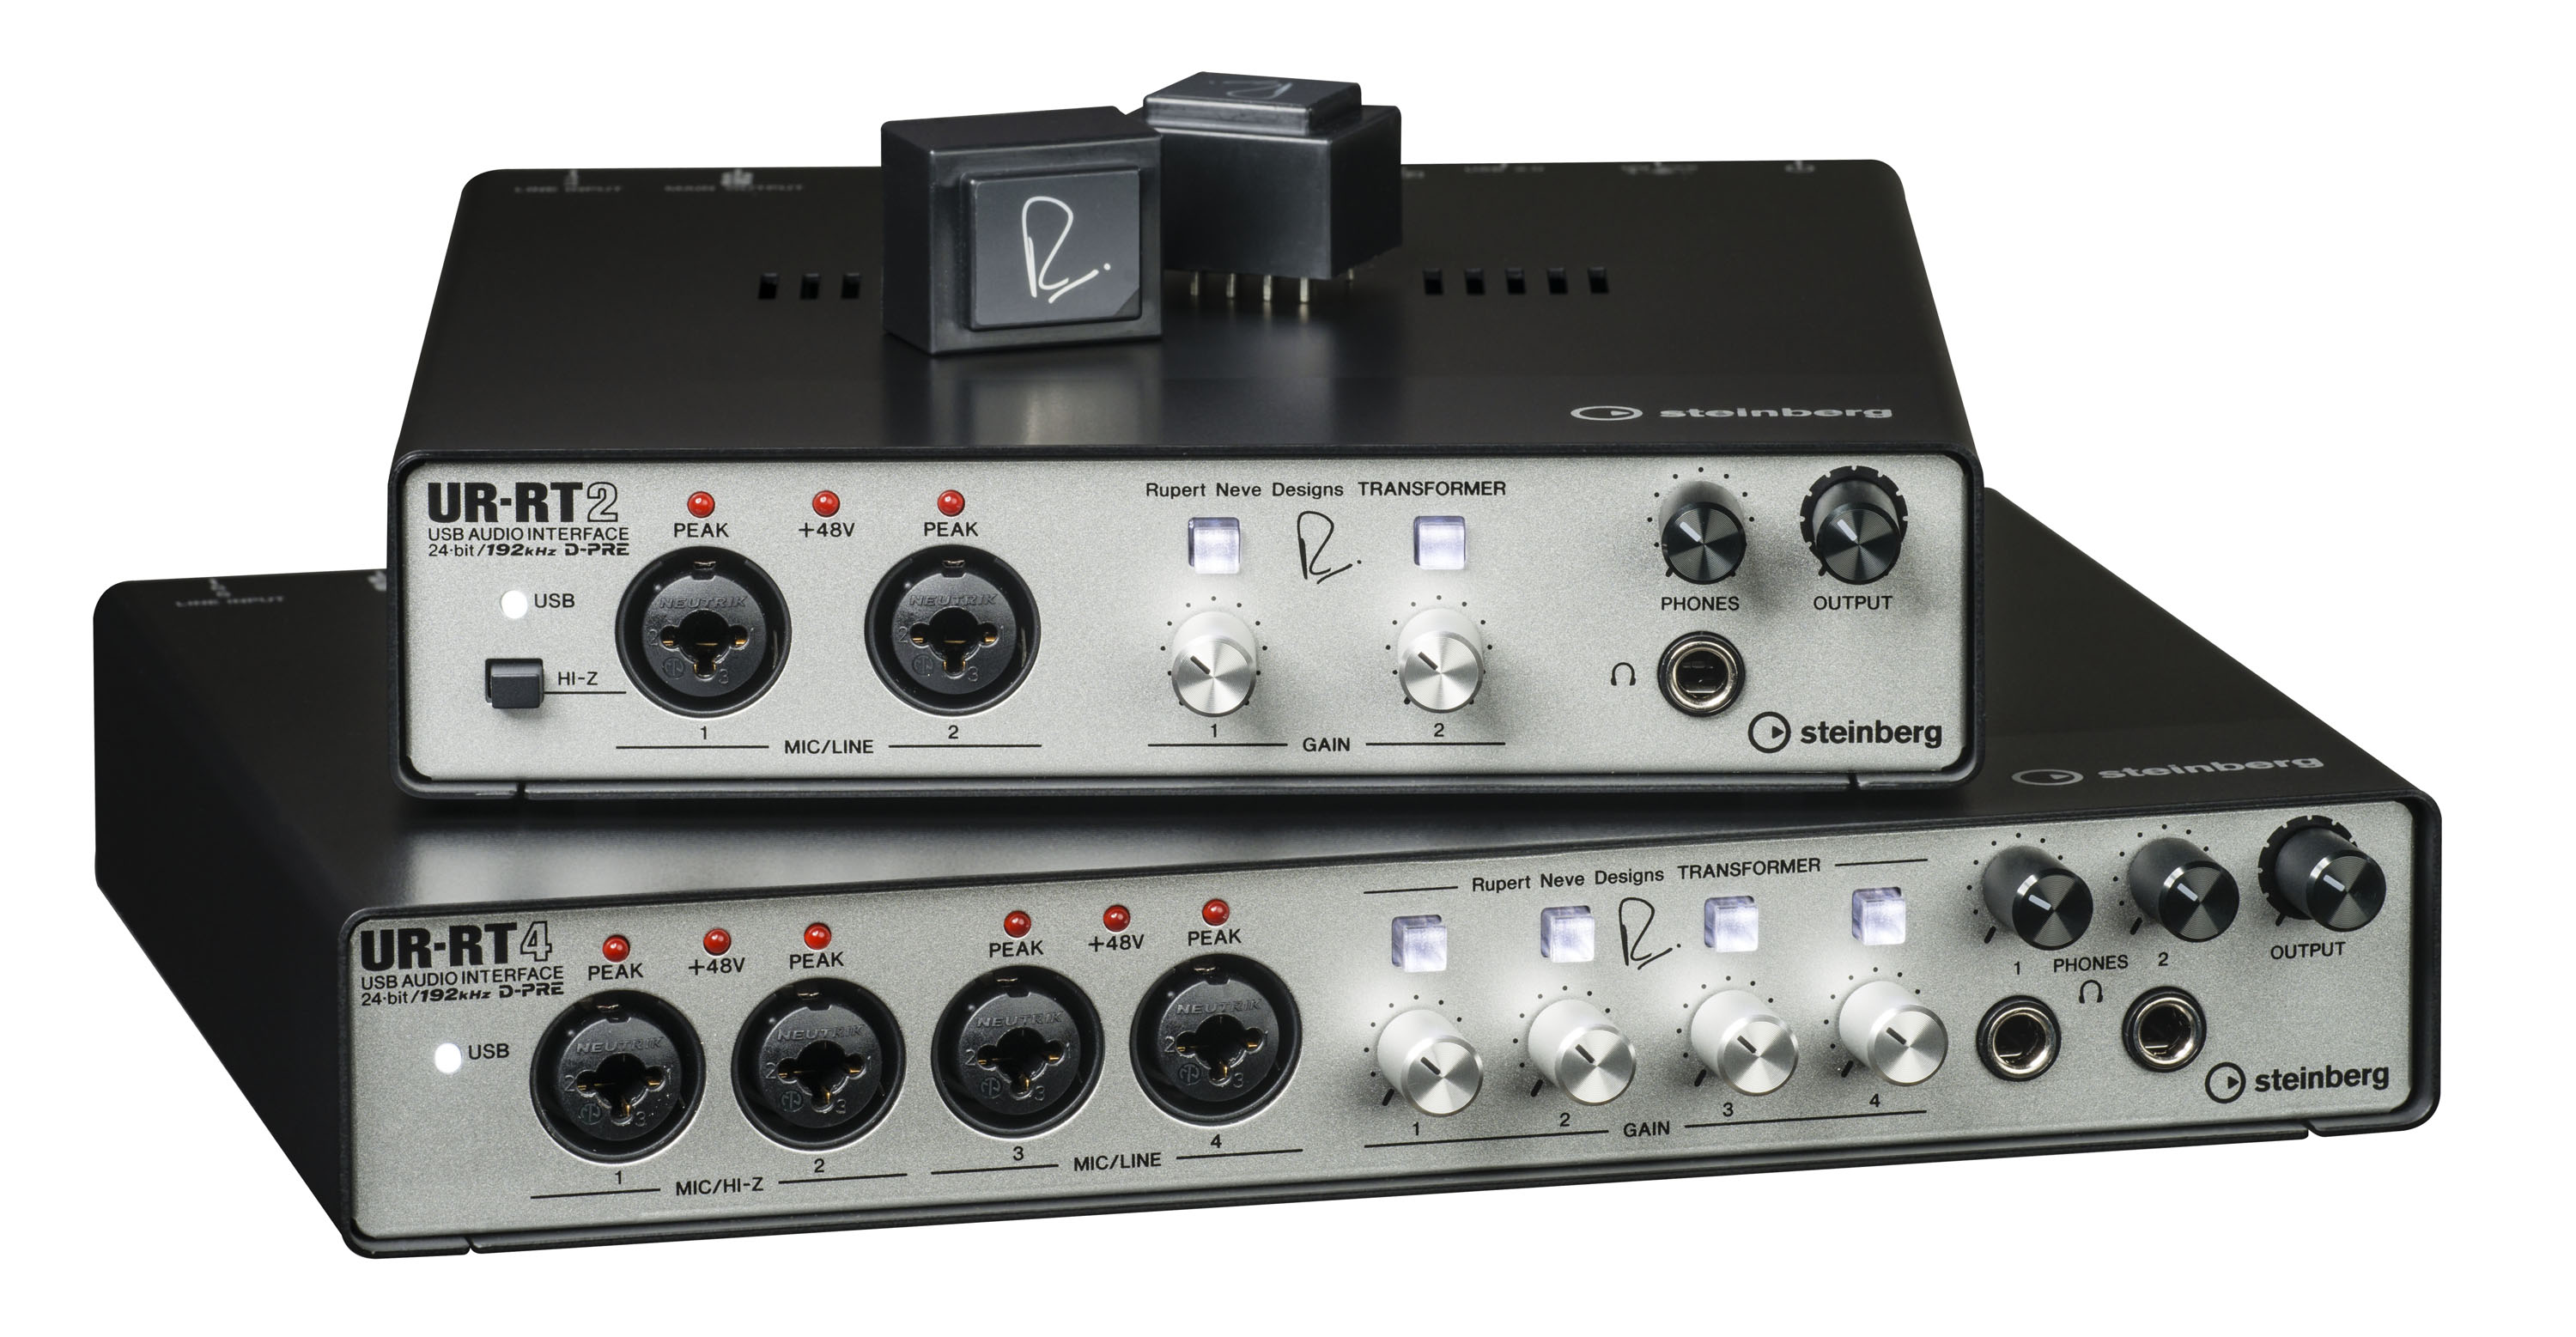 Steinberg UR-RT USB Interface with Transformers by Rupert Neve Designs